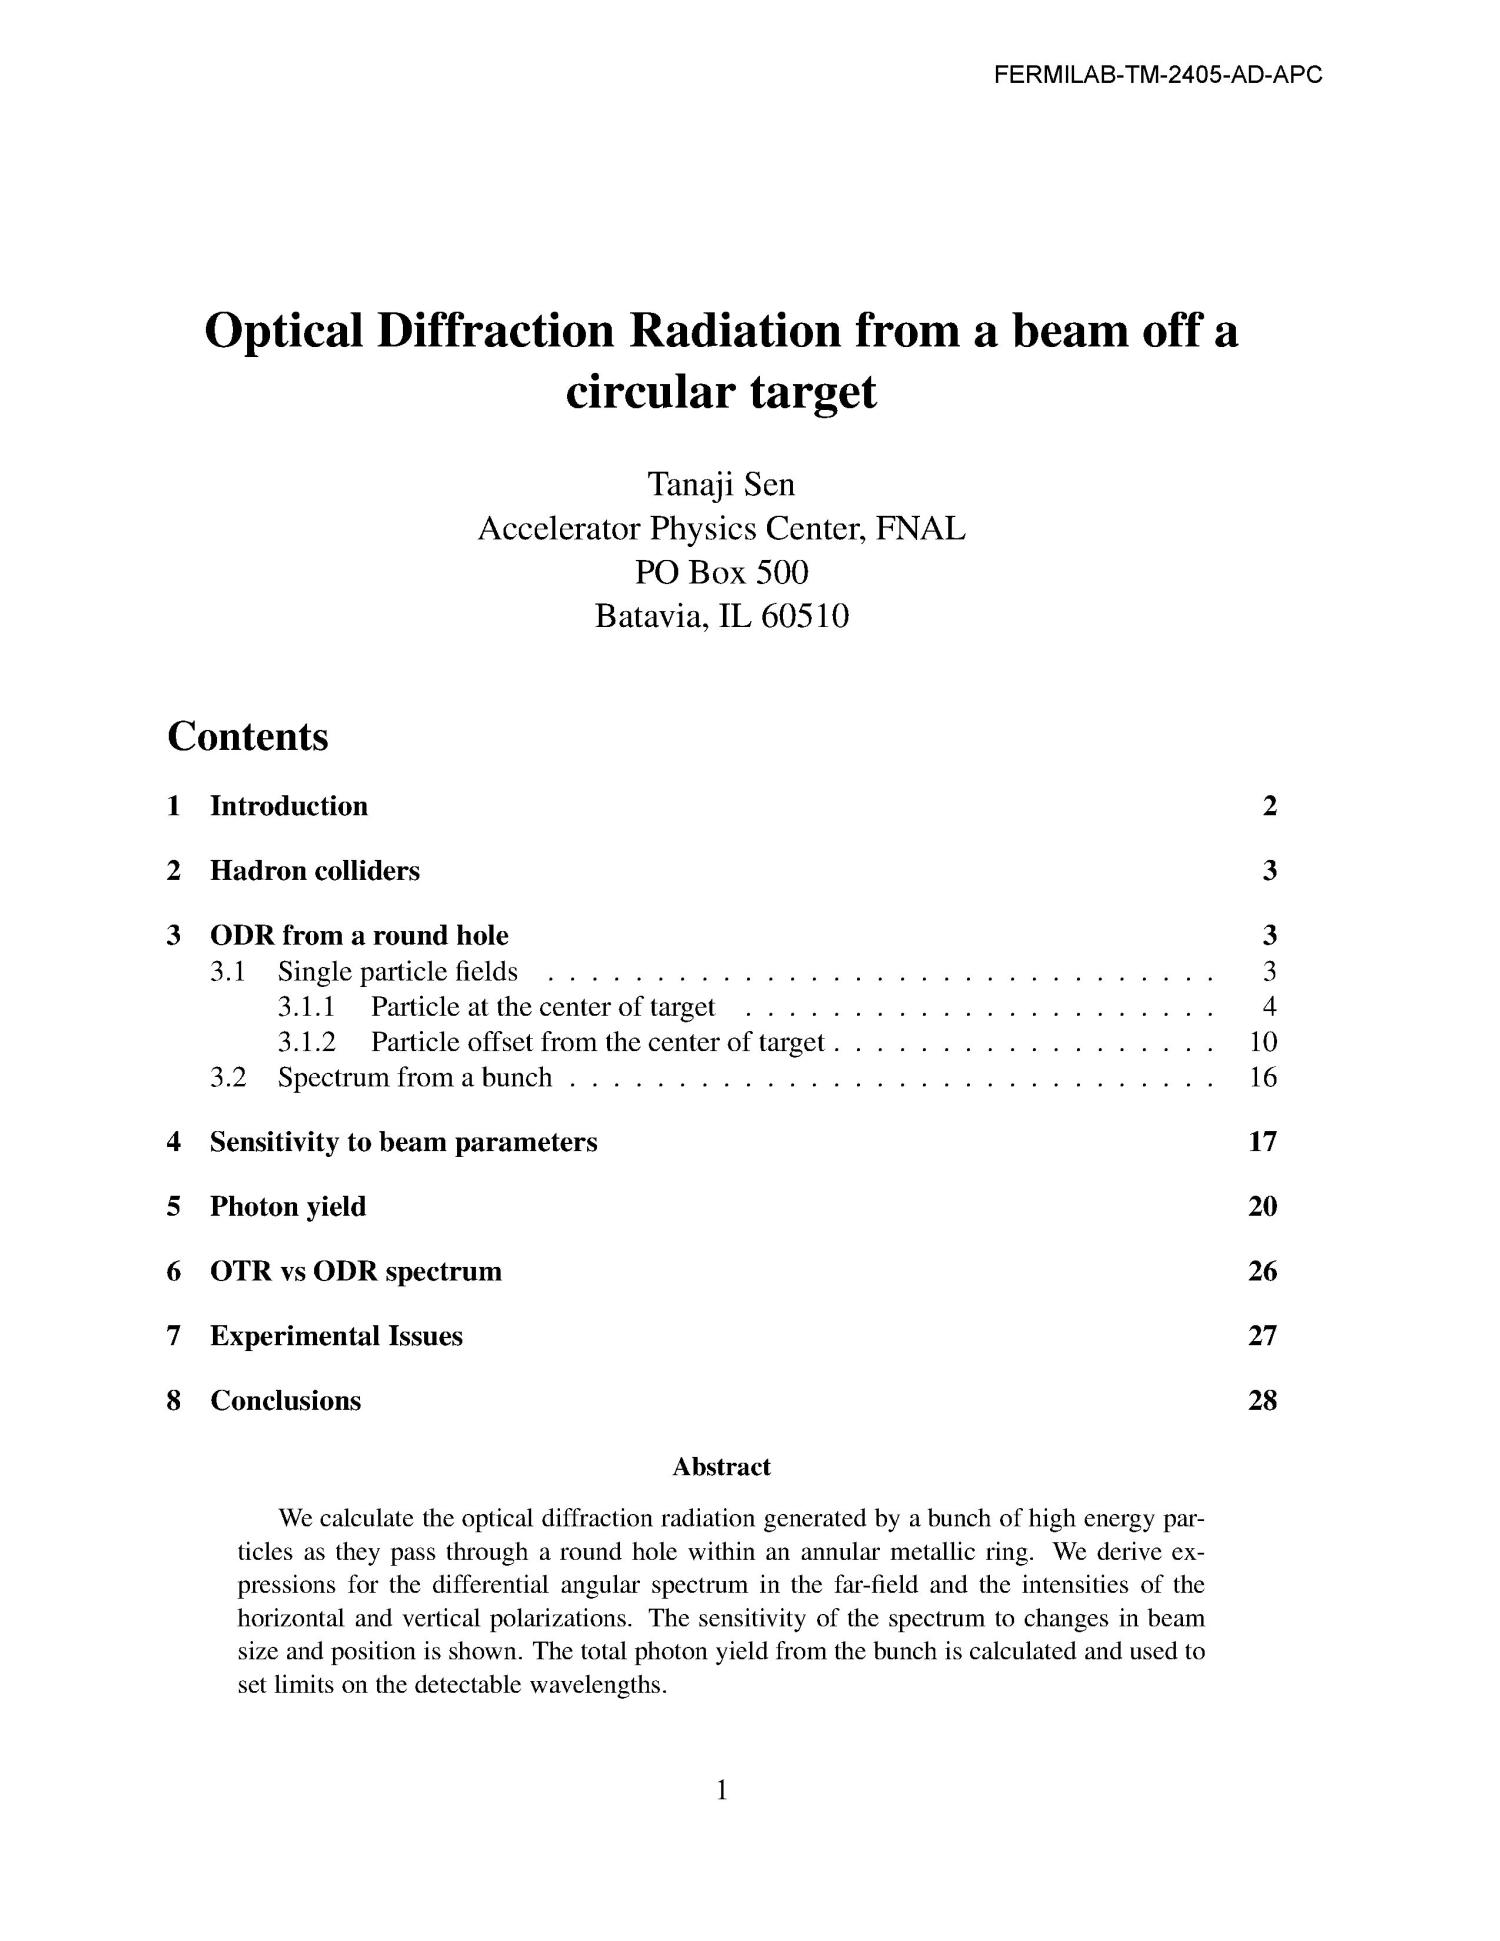 Optical diffraction radiation from a beam off a circular target                                                                                                      [Sequence #]: 1 of 29